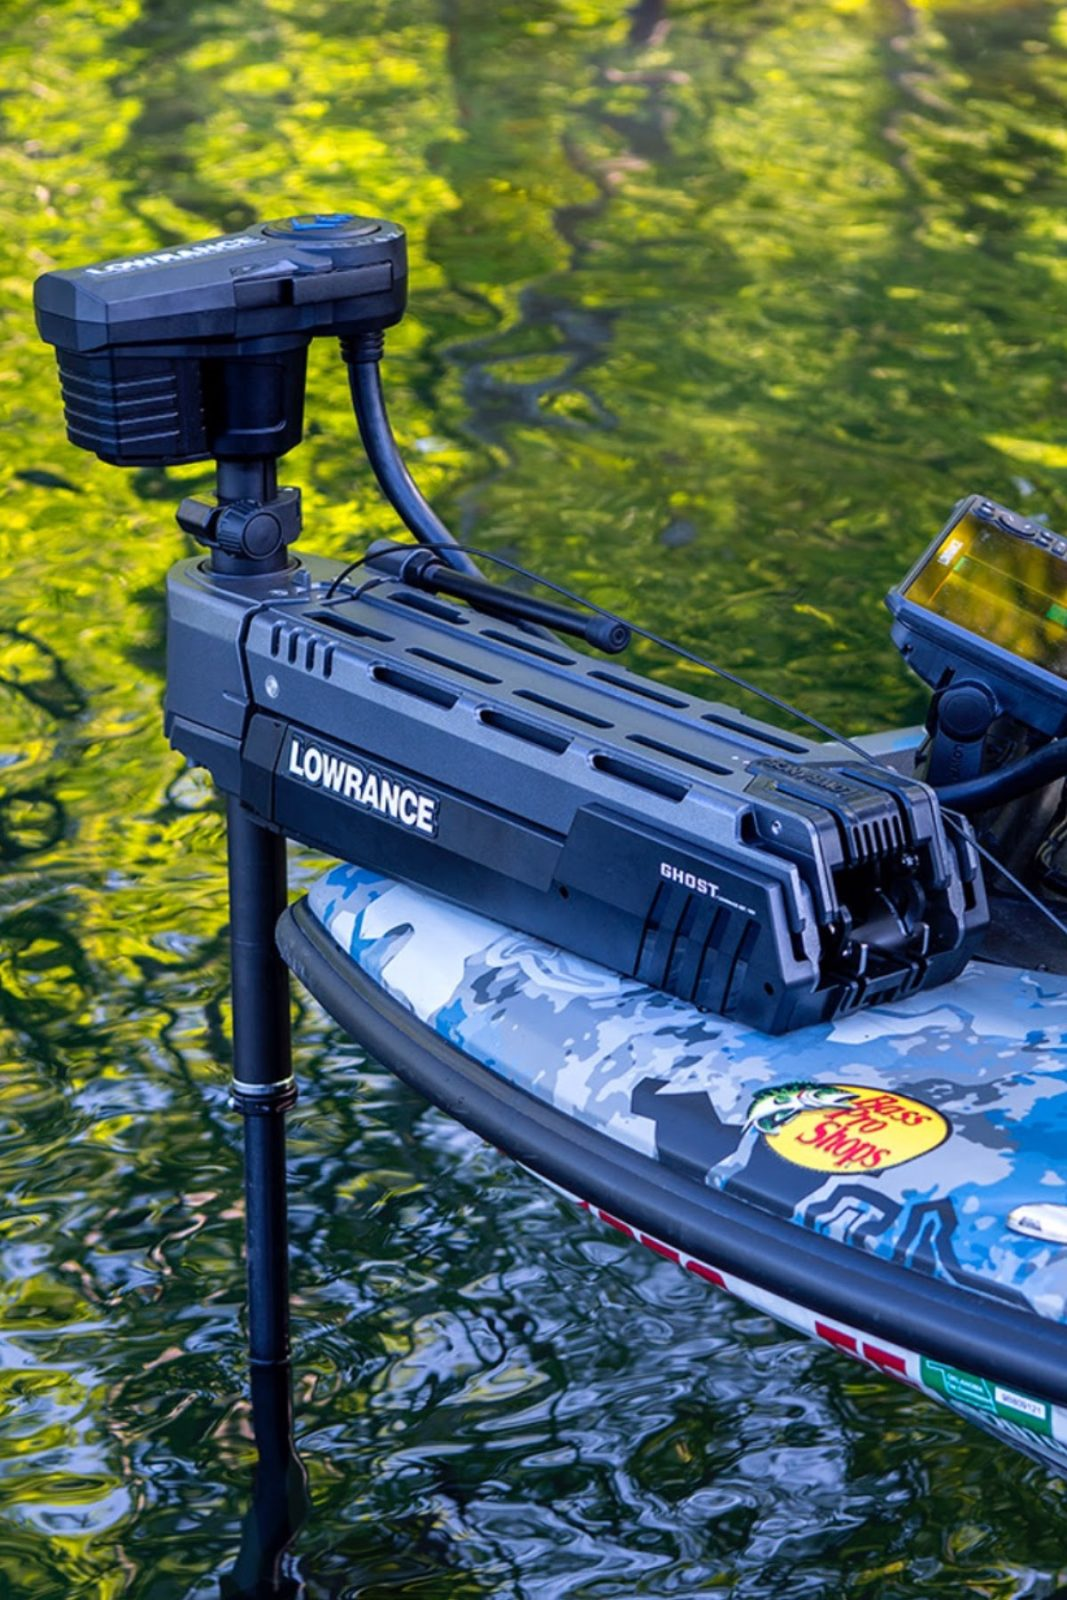 Lowrance Launches Ghost Trolling Motor - Panbo